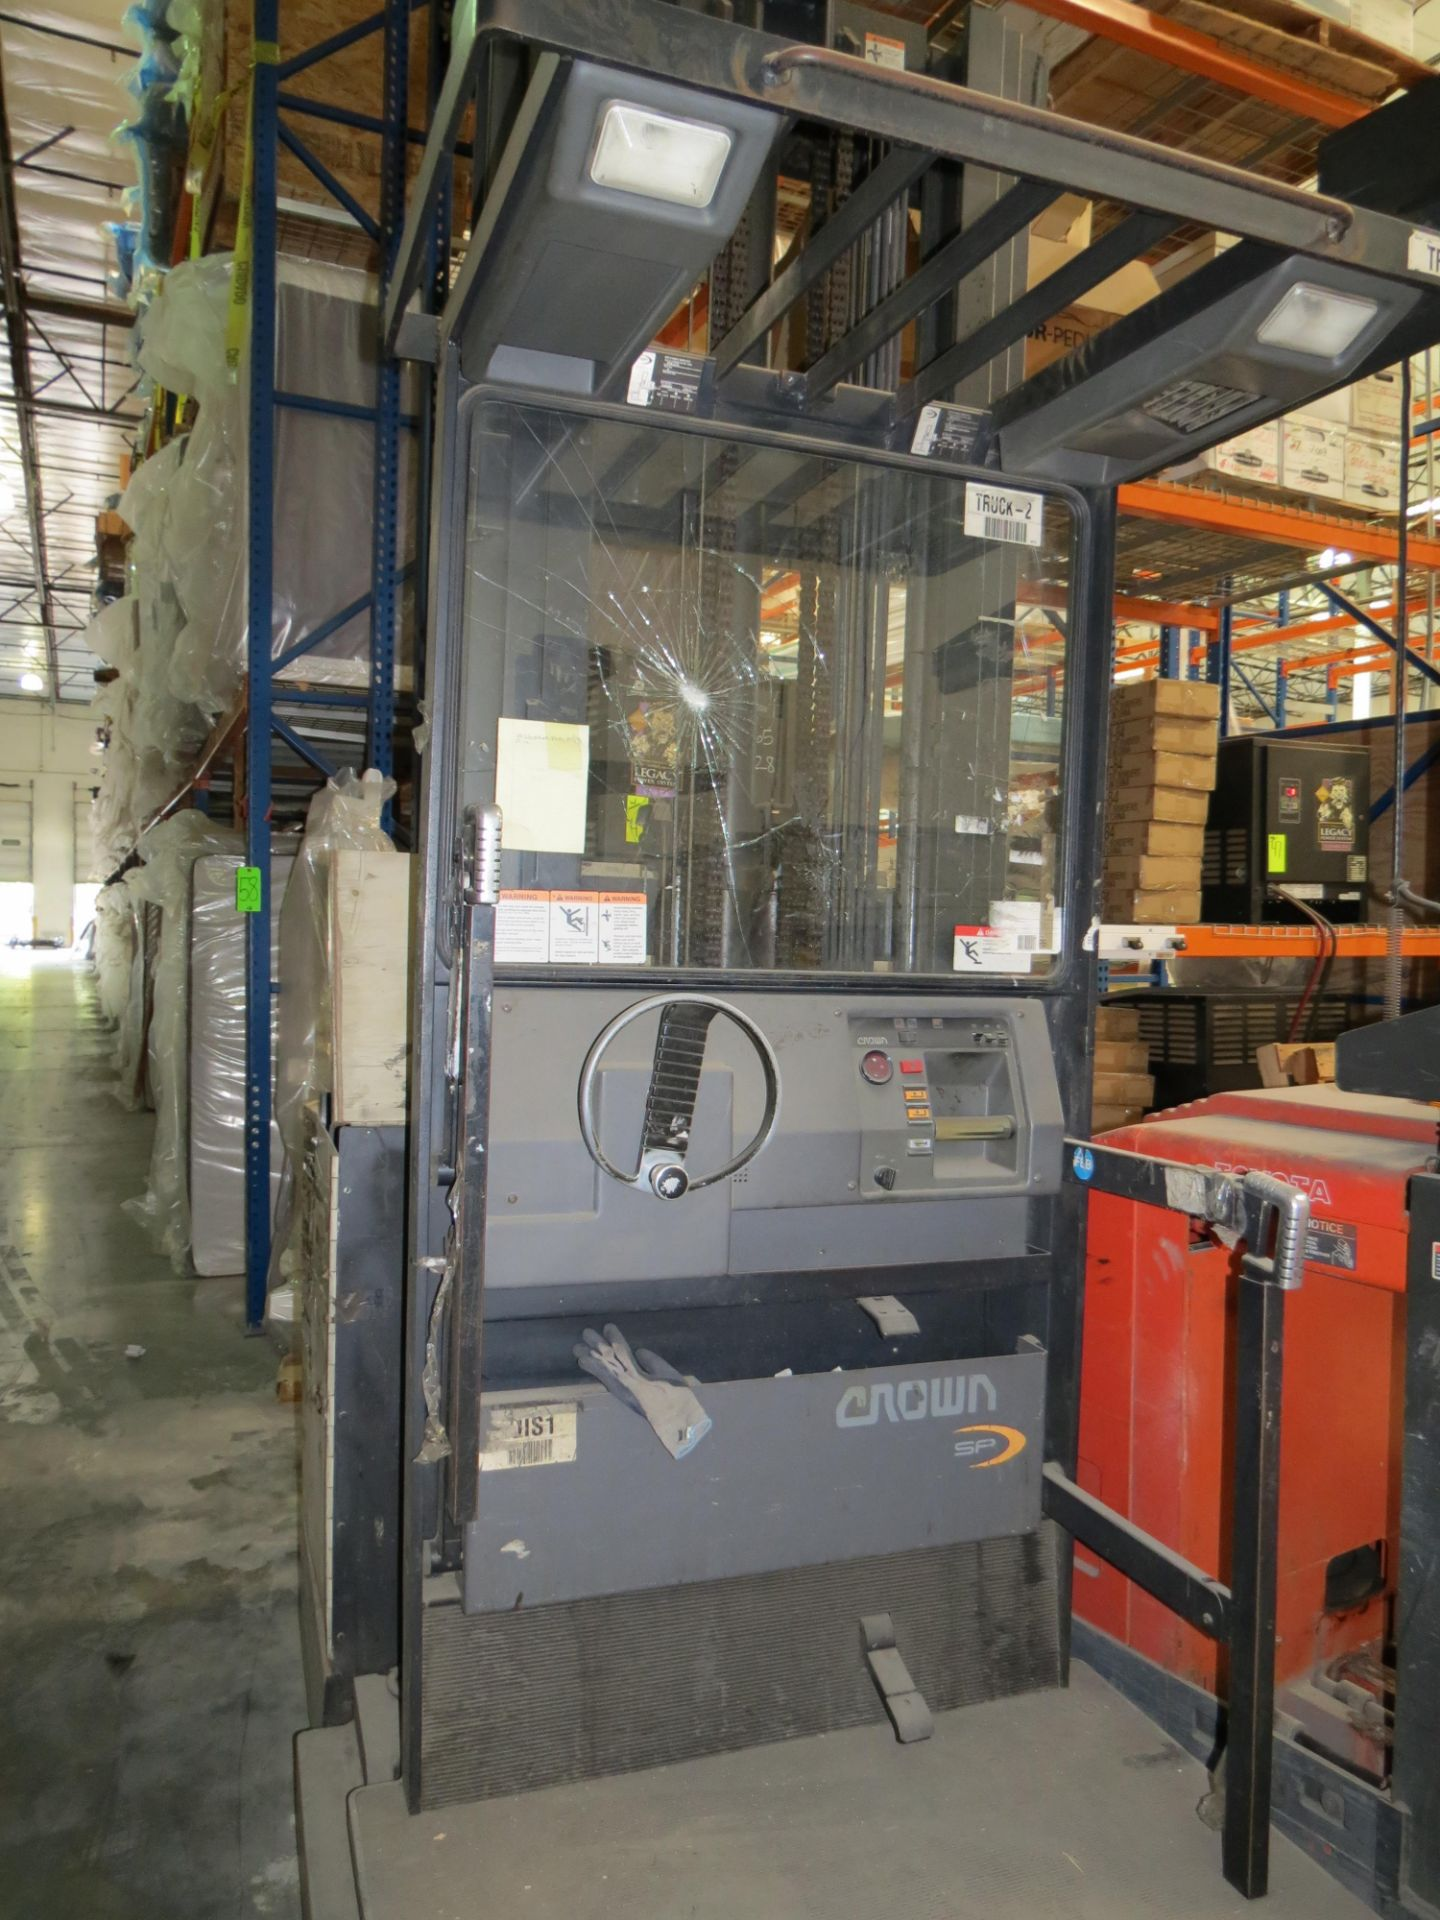 Crown SP 3-Stage Order Picker Electric Forklift 6860 Capacity ( Does Not Run, Needs New Battery) - Image 2 of 6